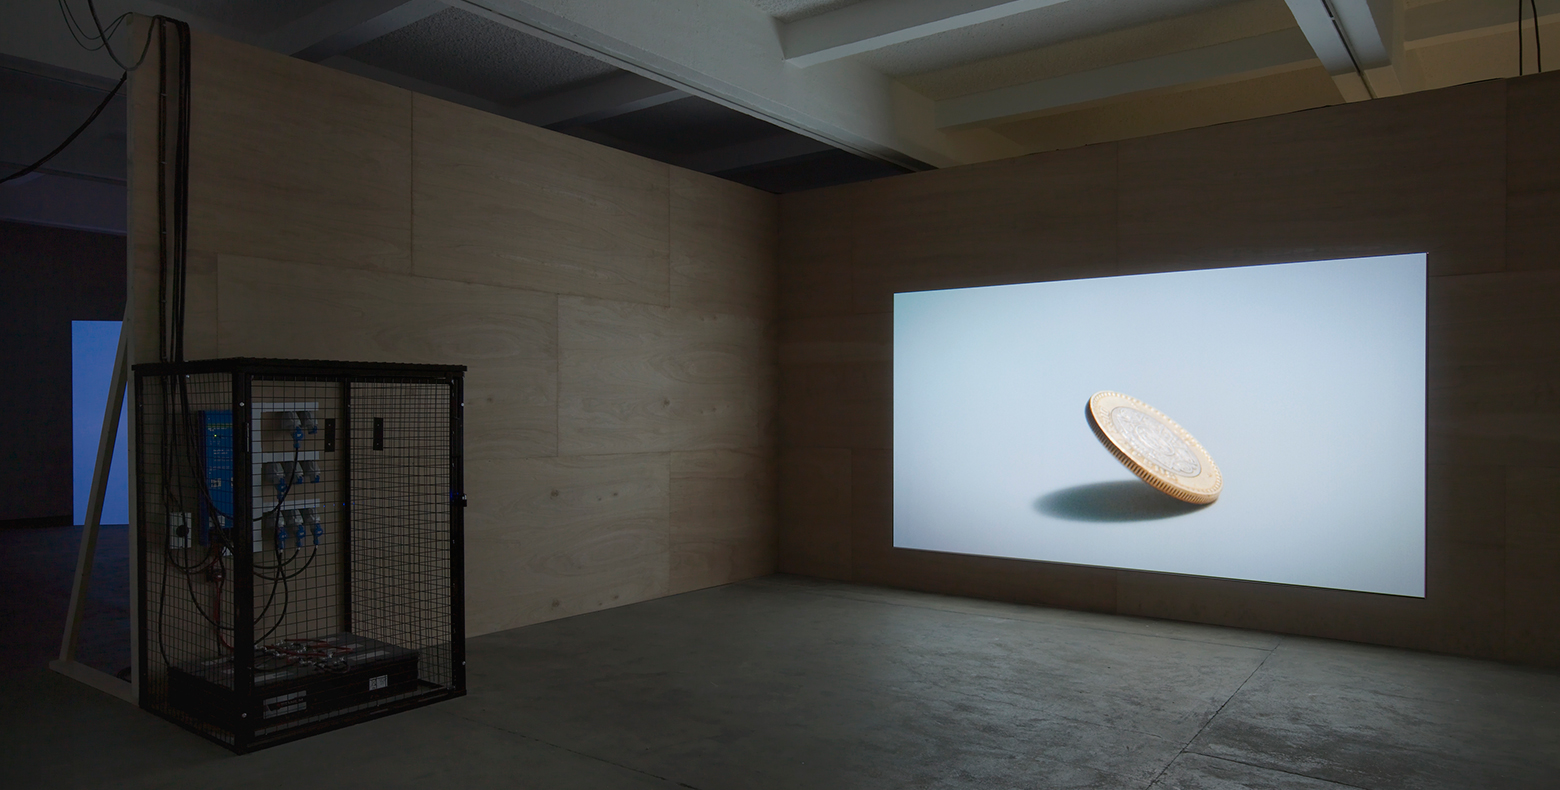 Nicholas Mangan, 'Ancient Lights', 2015. Installation view, Chisenhale Gallery, 2015. Co-commissioned by Chisenhale Gallery, London and Artspace, Sydney. Courtesy the artist; Labor Mexico; Sutton Gallery, Melbourne; and Hopkinson Mossman, Auckland.